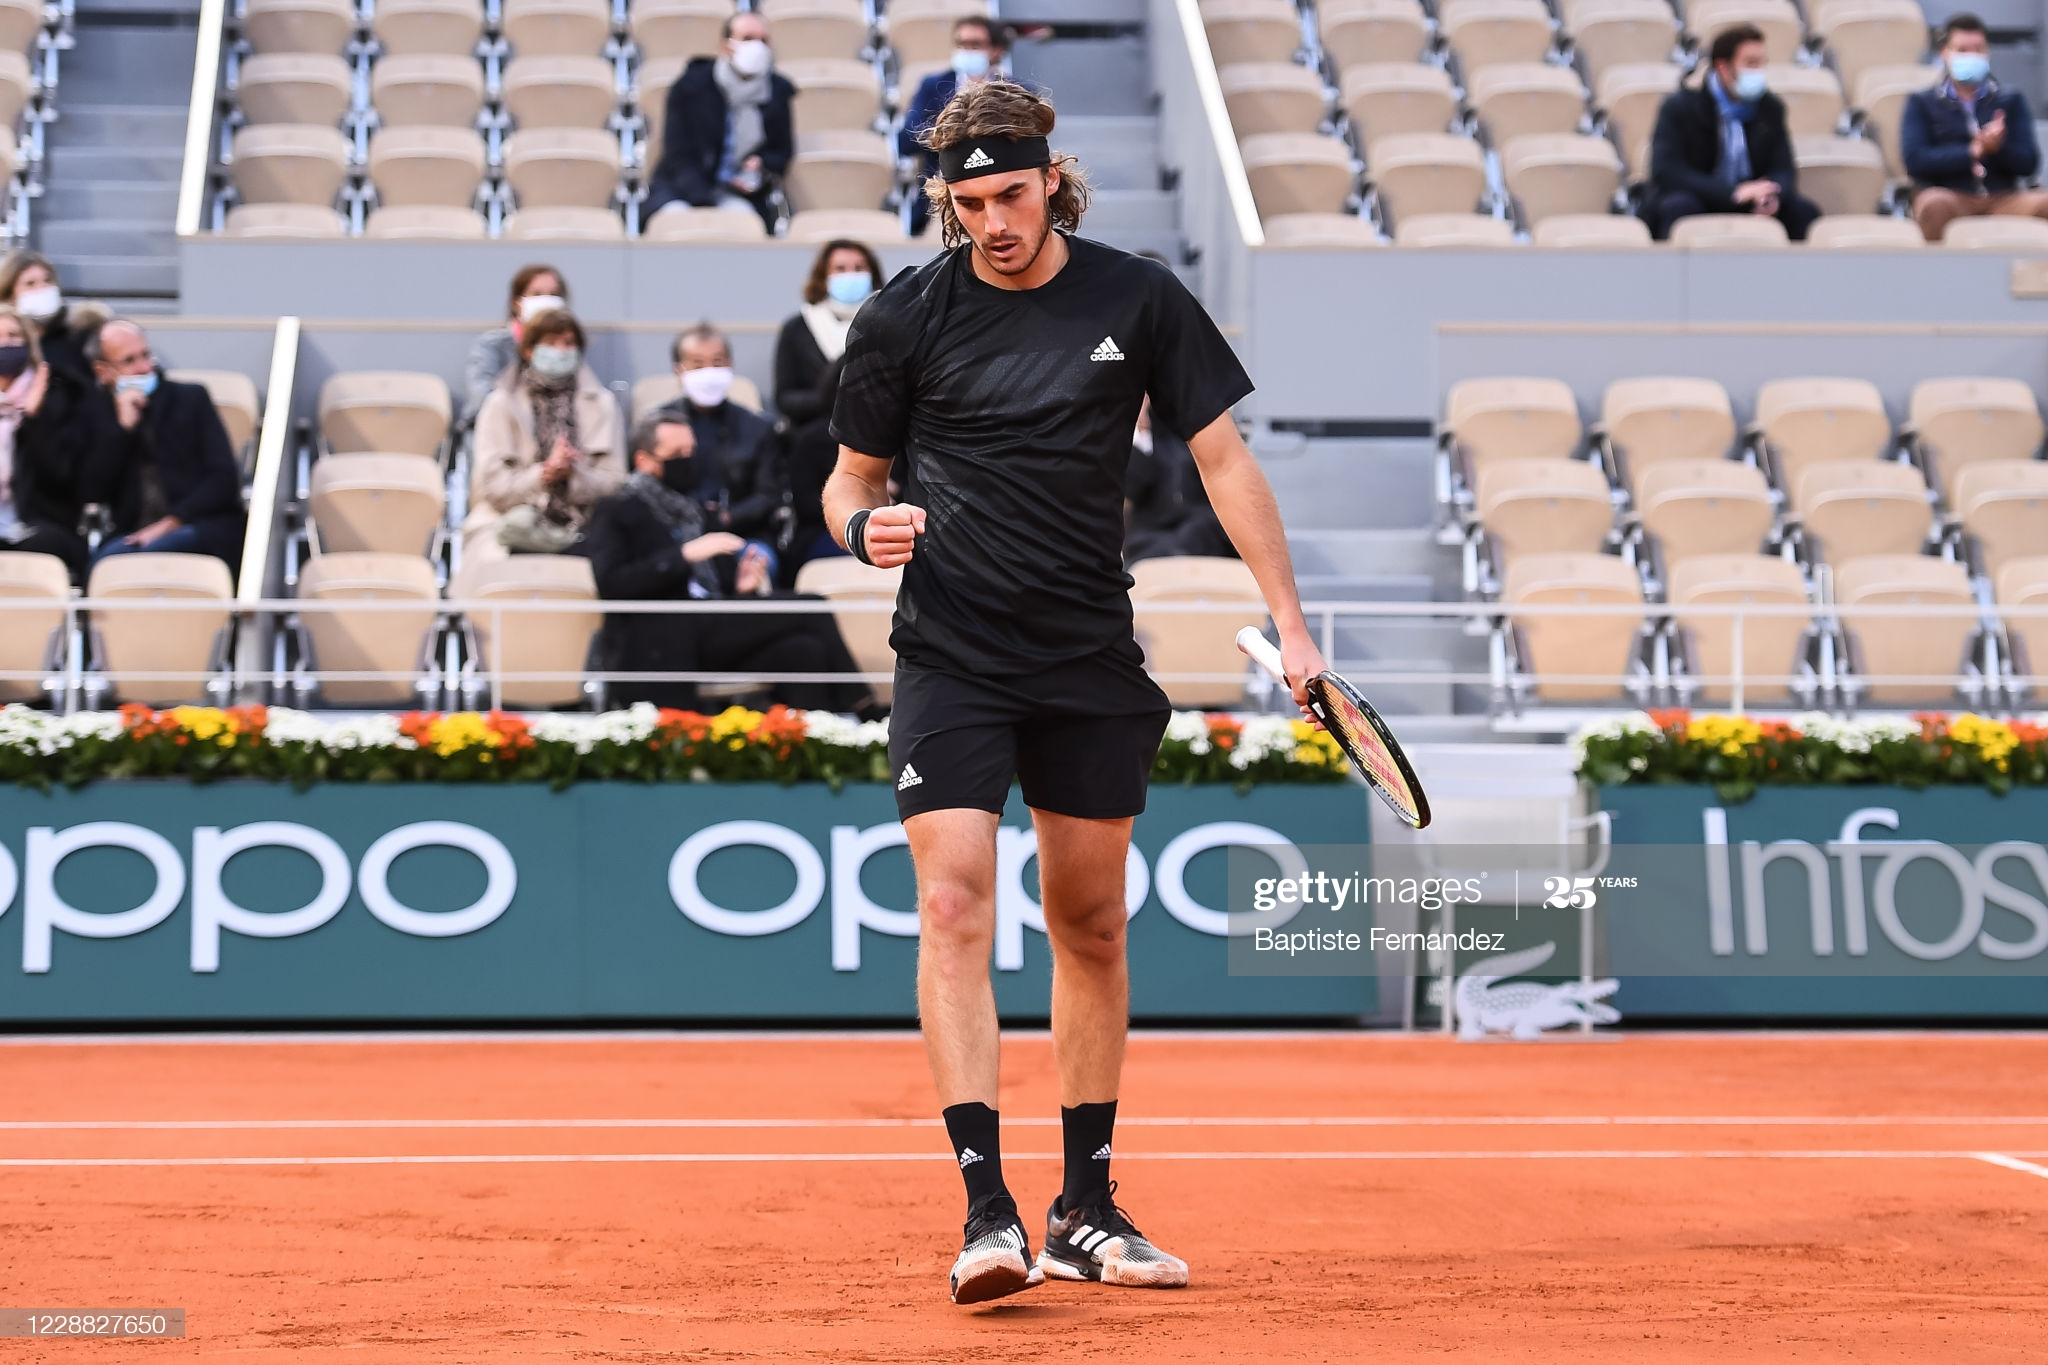 taitsipas day 5 french open 2020